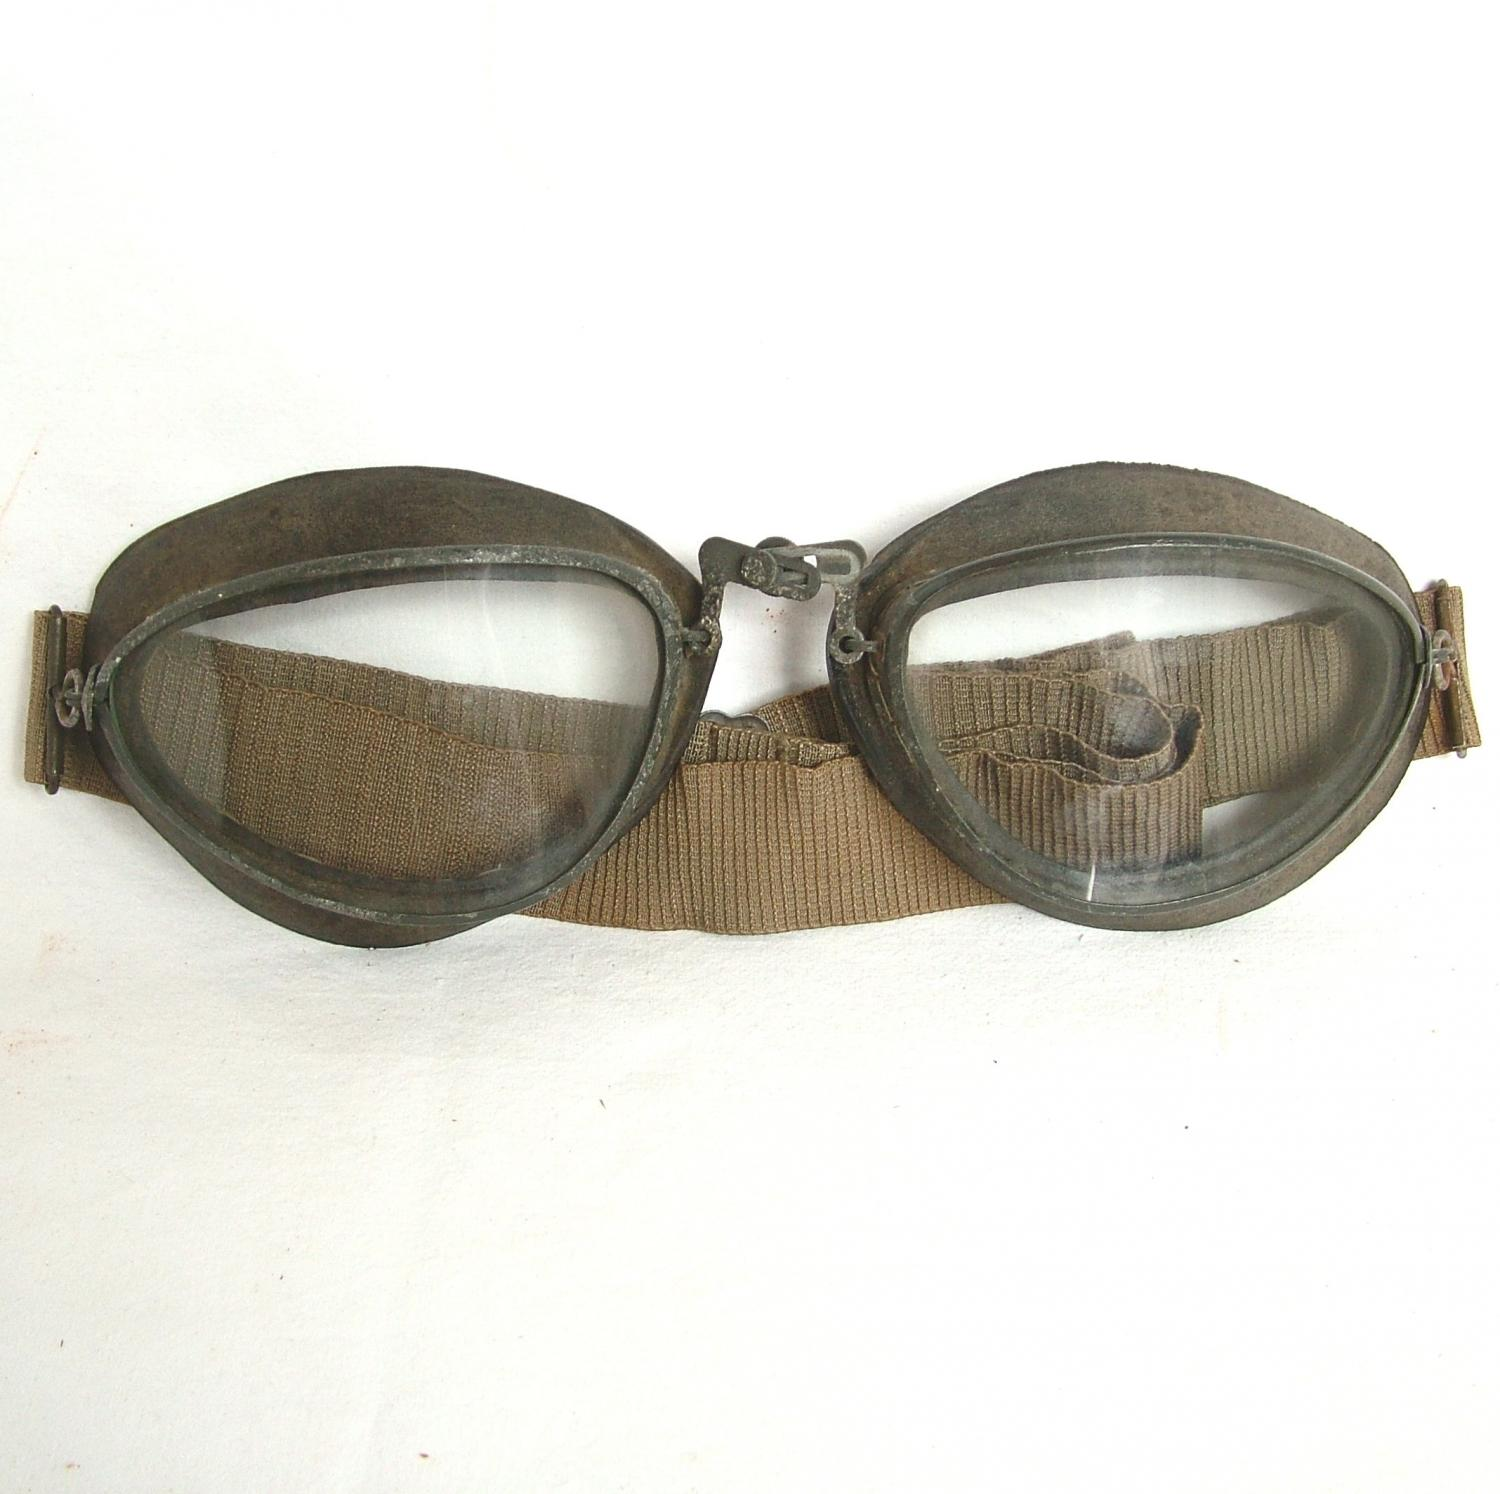 Luftwaffe Model '306' Flying Goggles